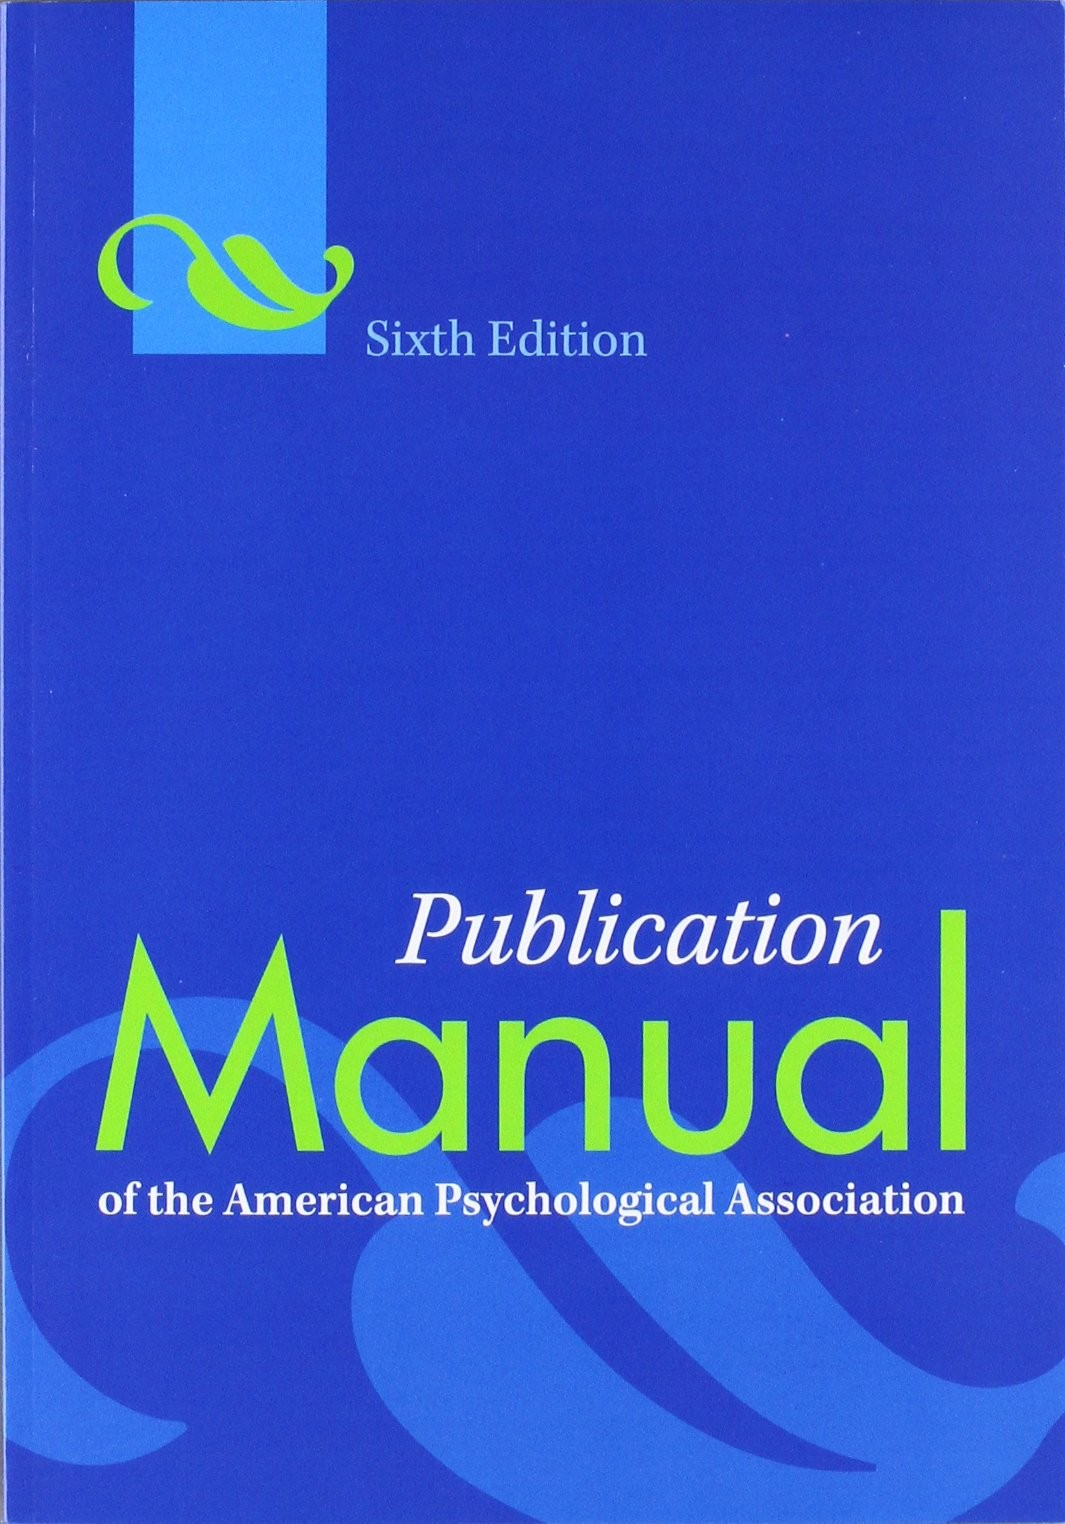 Publication Manual of the American Psychological Association by American Psychological Association, ISBN: 9781433805615